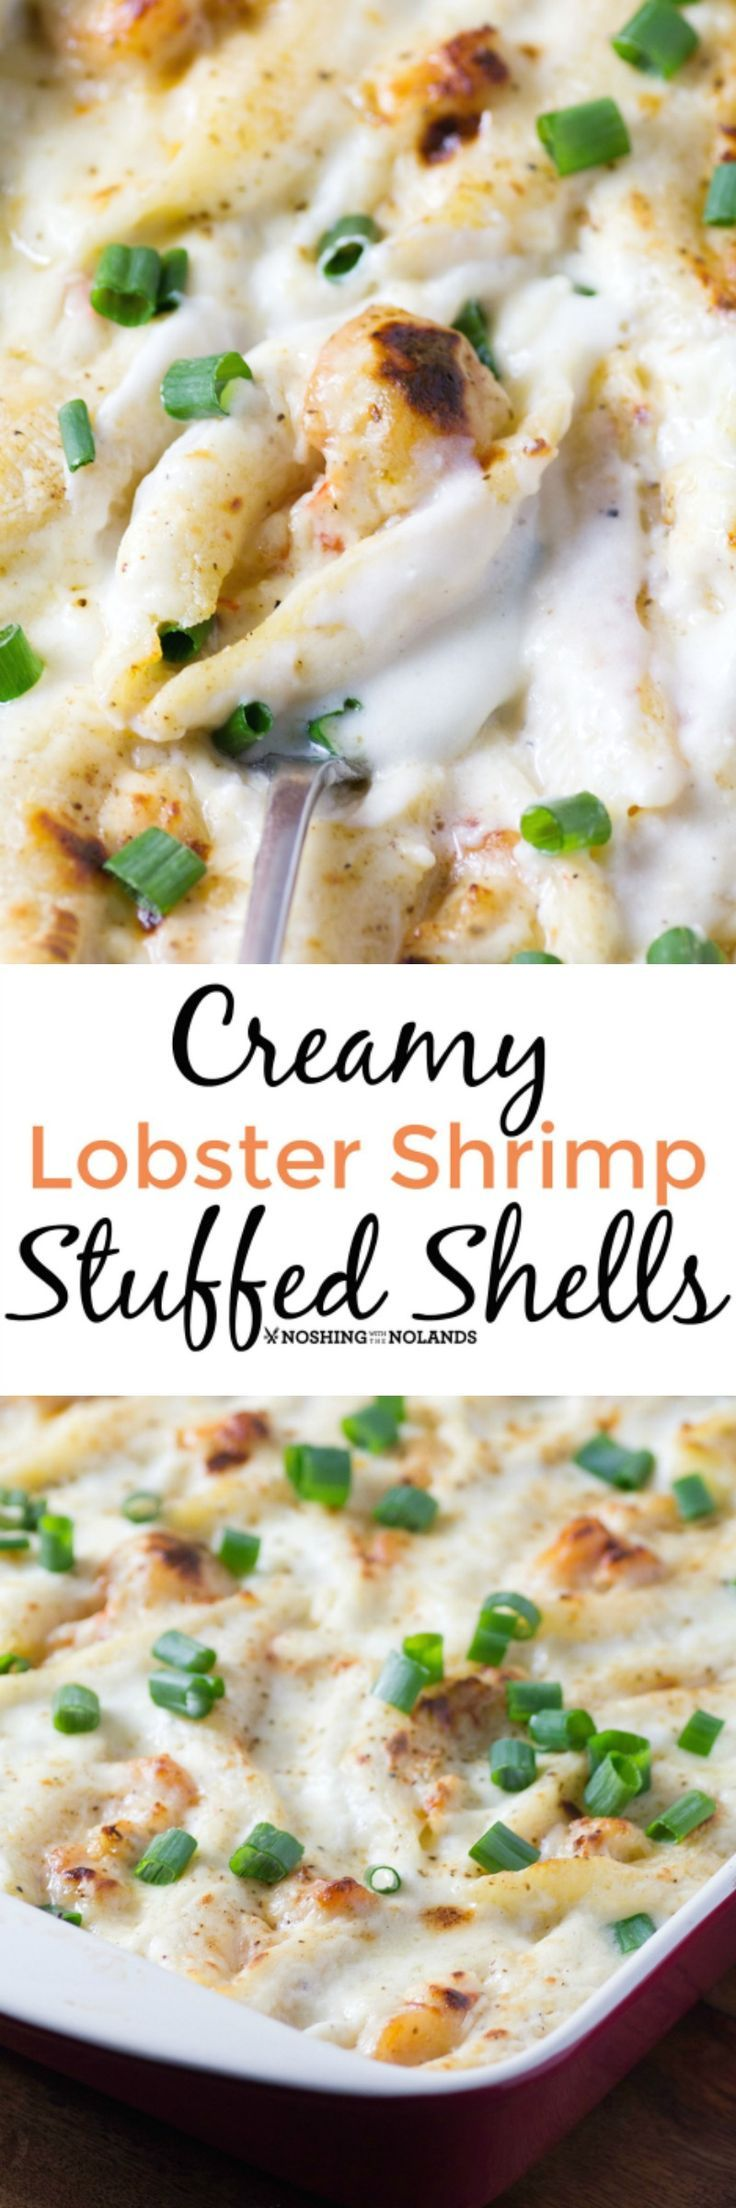 Creamy Lobster Shrimp Stuffed Shells by Noshing With The Nolands is a decadent dish perfect for any special occasion. How about a romantic dinner for two?